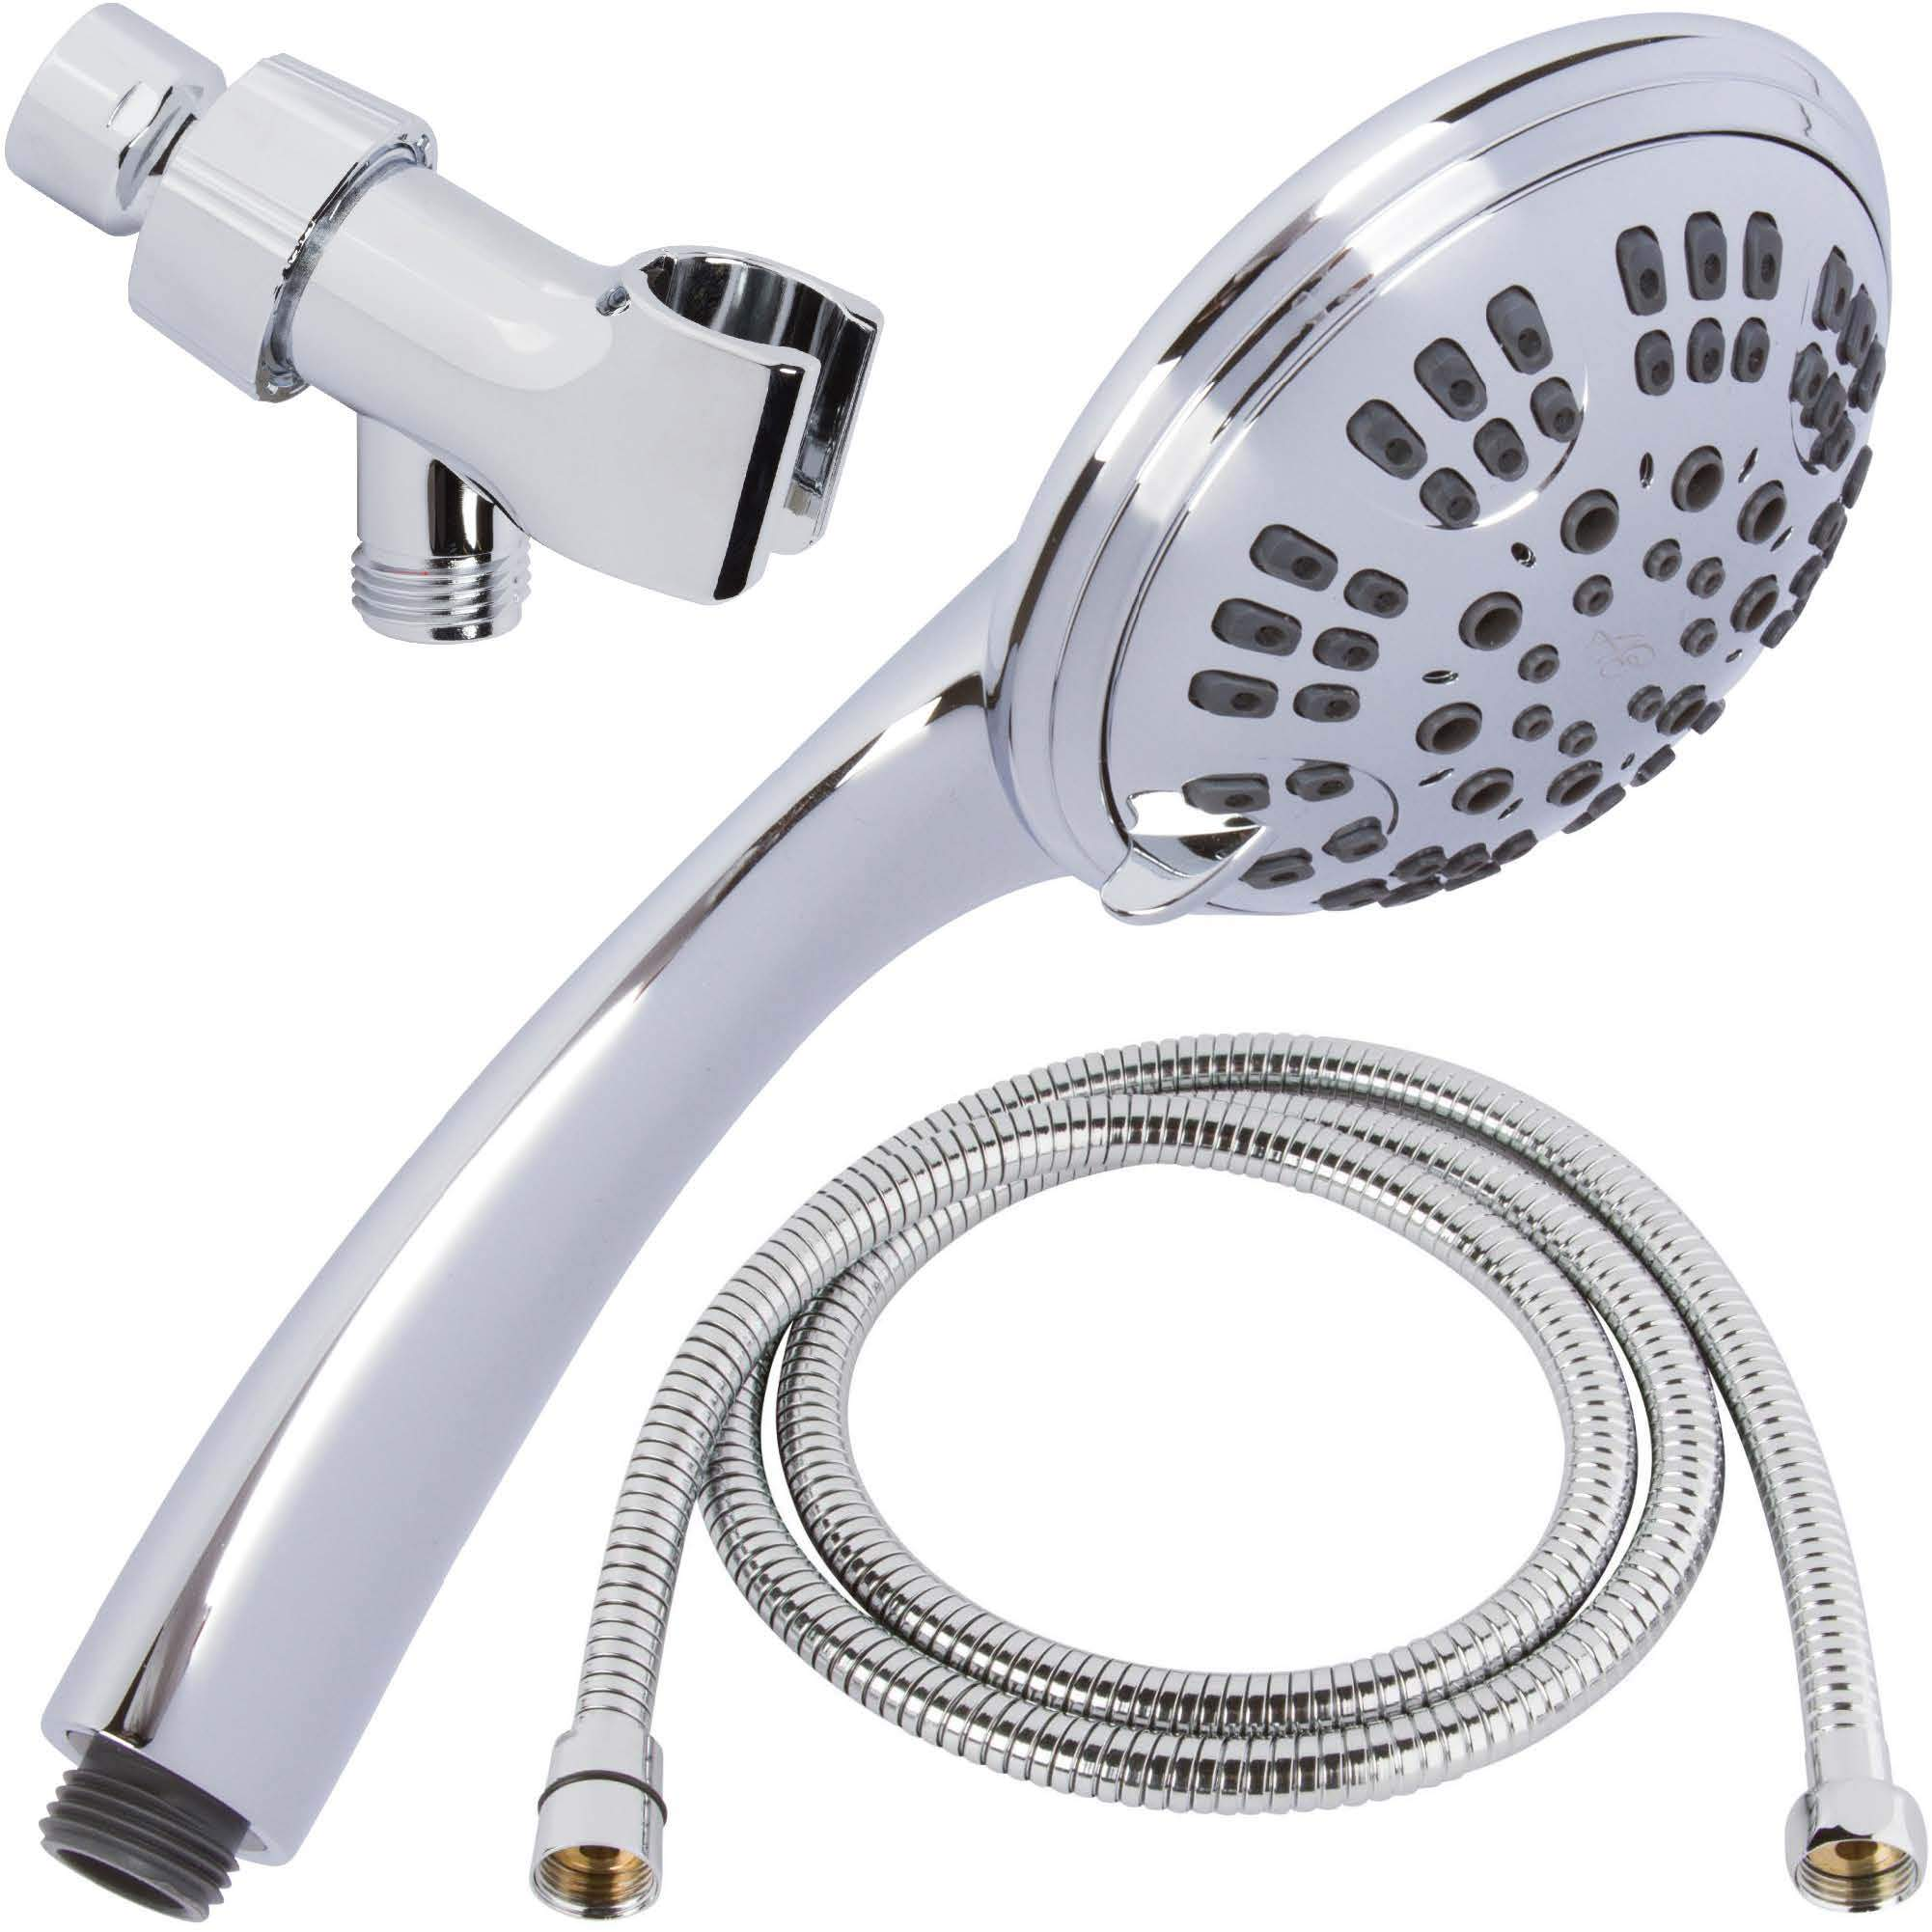 Shower Head Hand Held High Pressure Double Chrome Detachable Dual Rainfall New